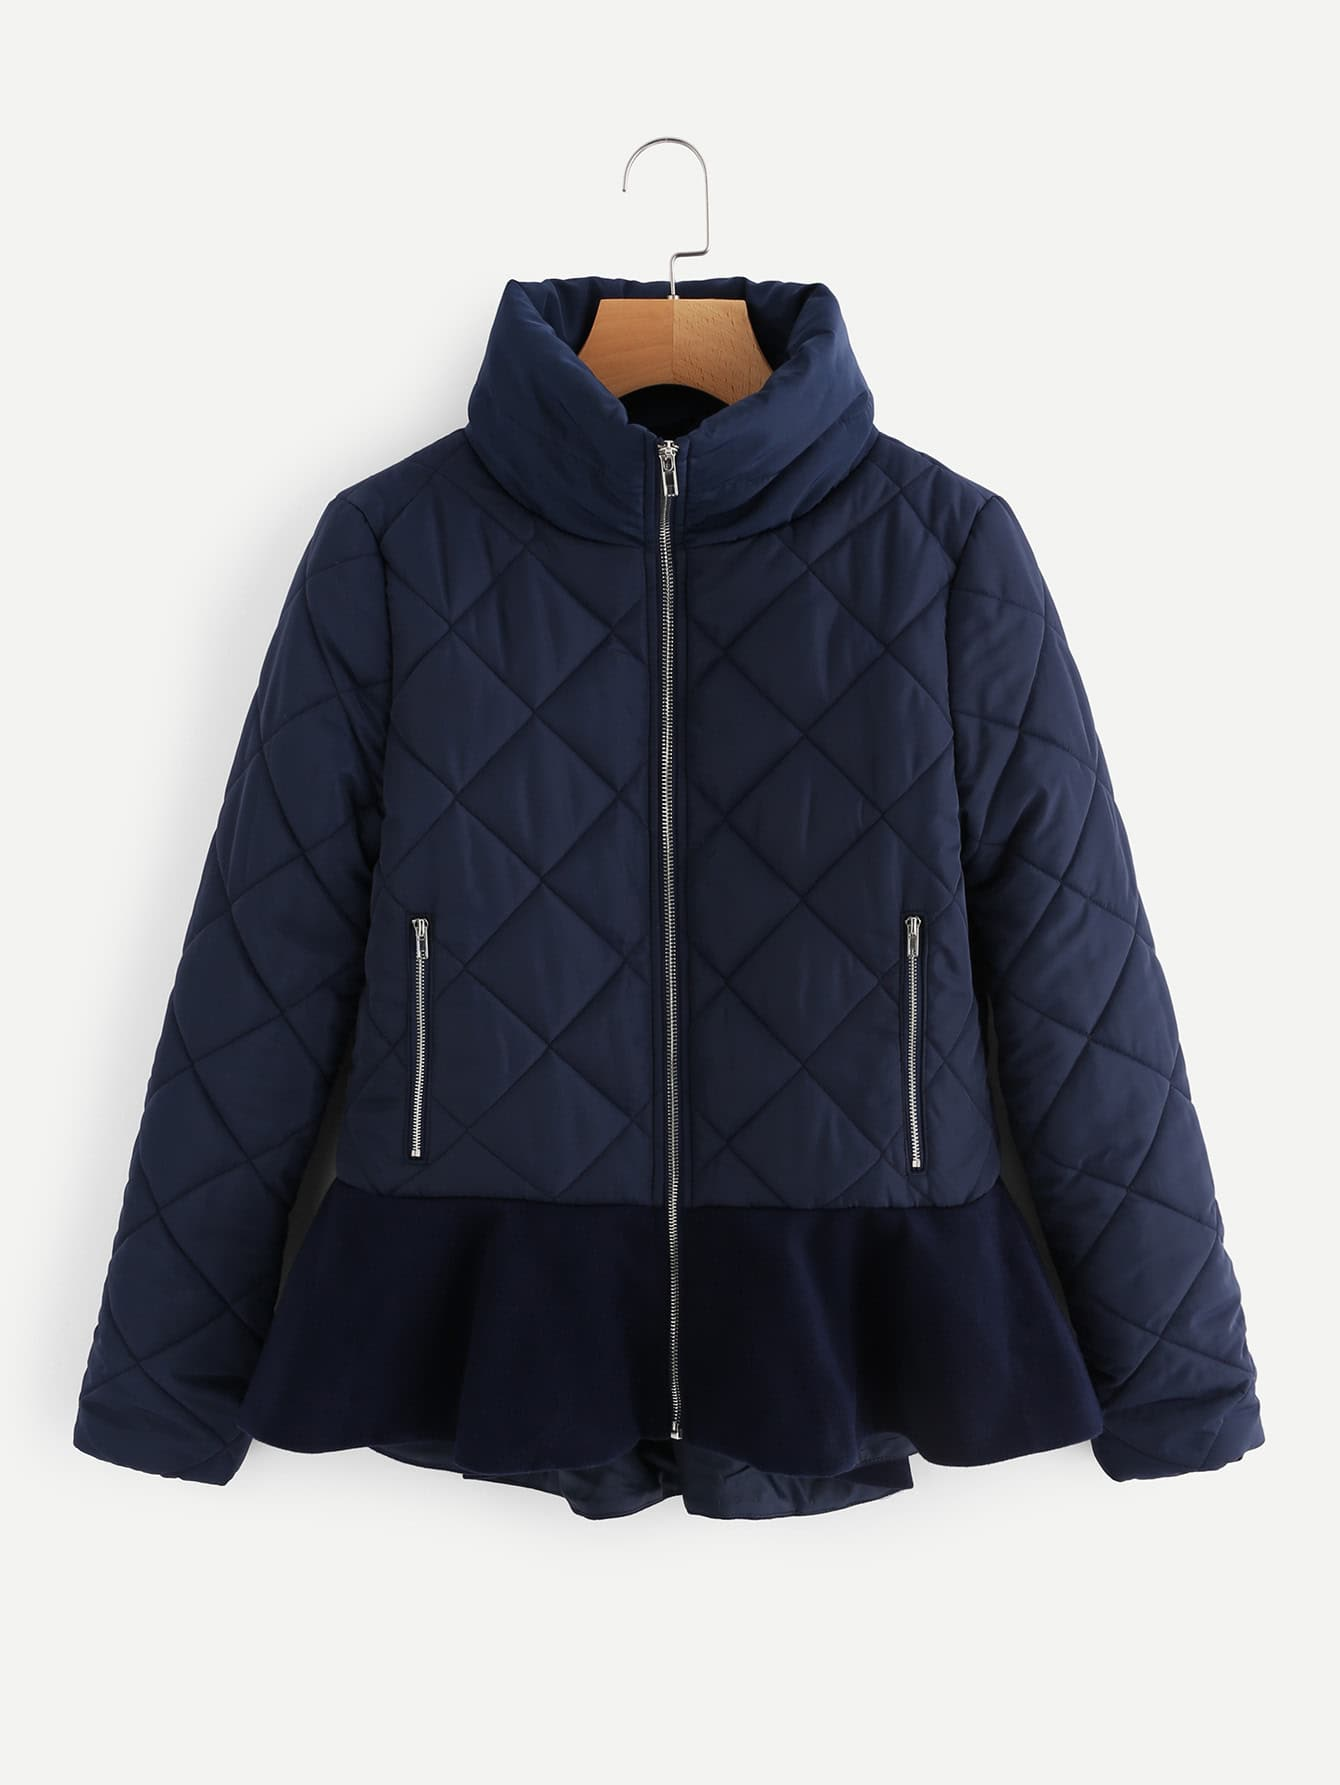 Stand Collar Ruffle Hem Quilted Coat stand collar ruffle hem quilted coat